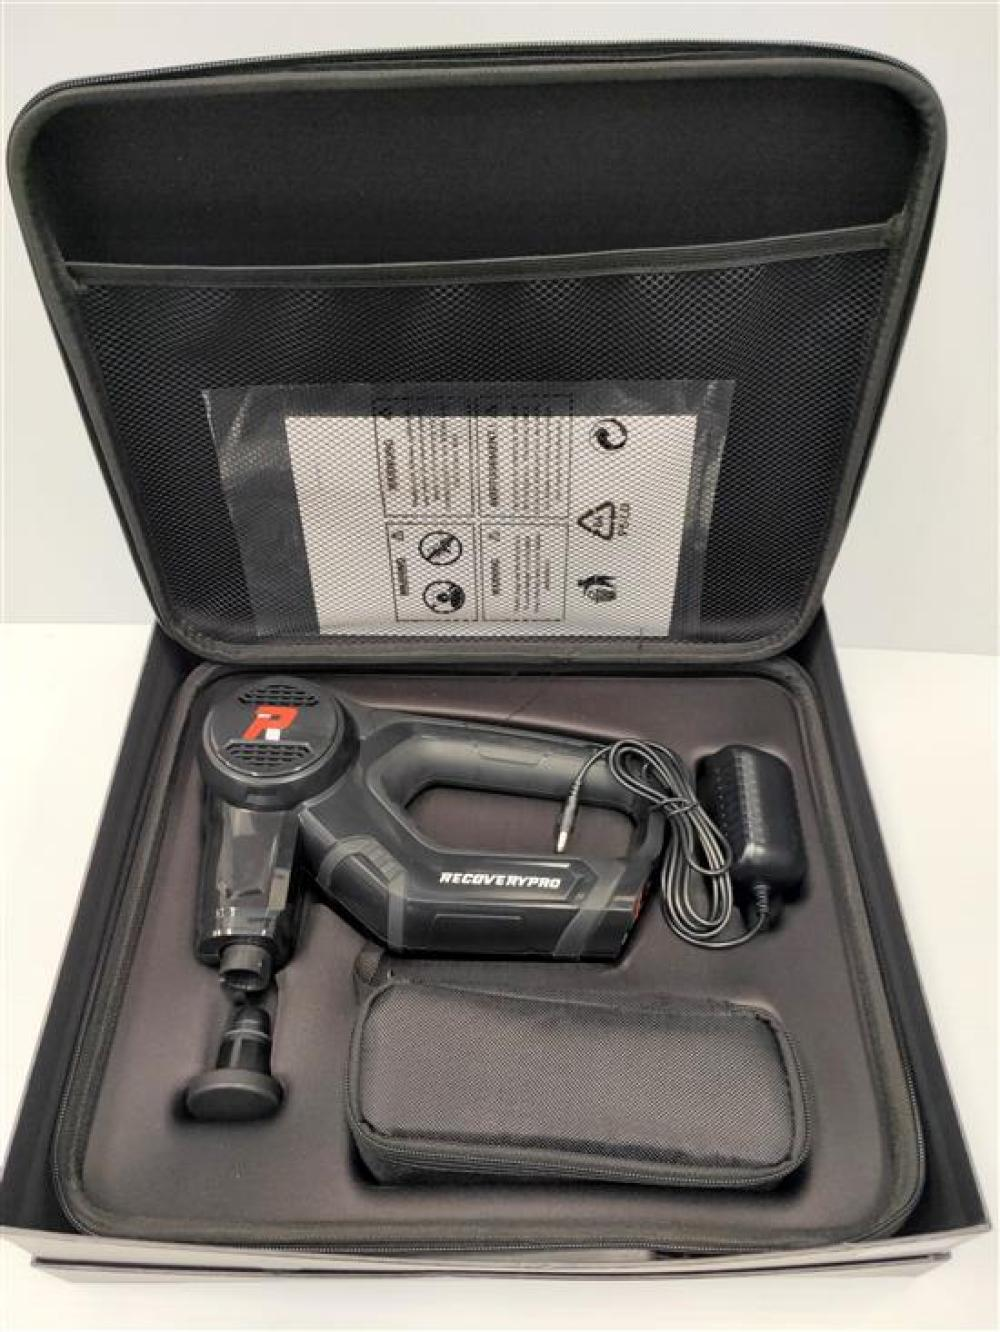 A massage gun marked Recovery Pro in open box, used